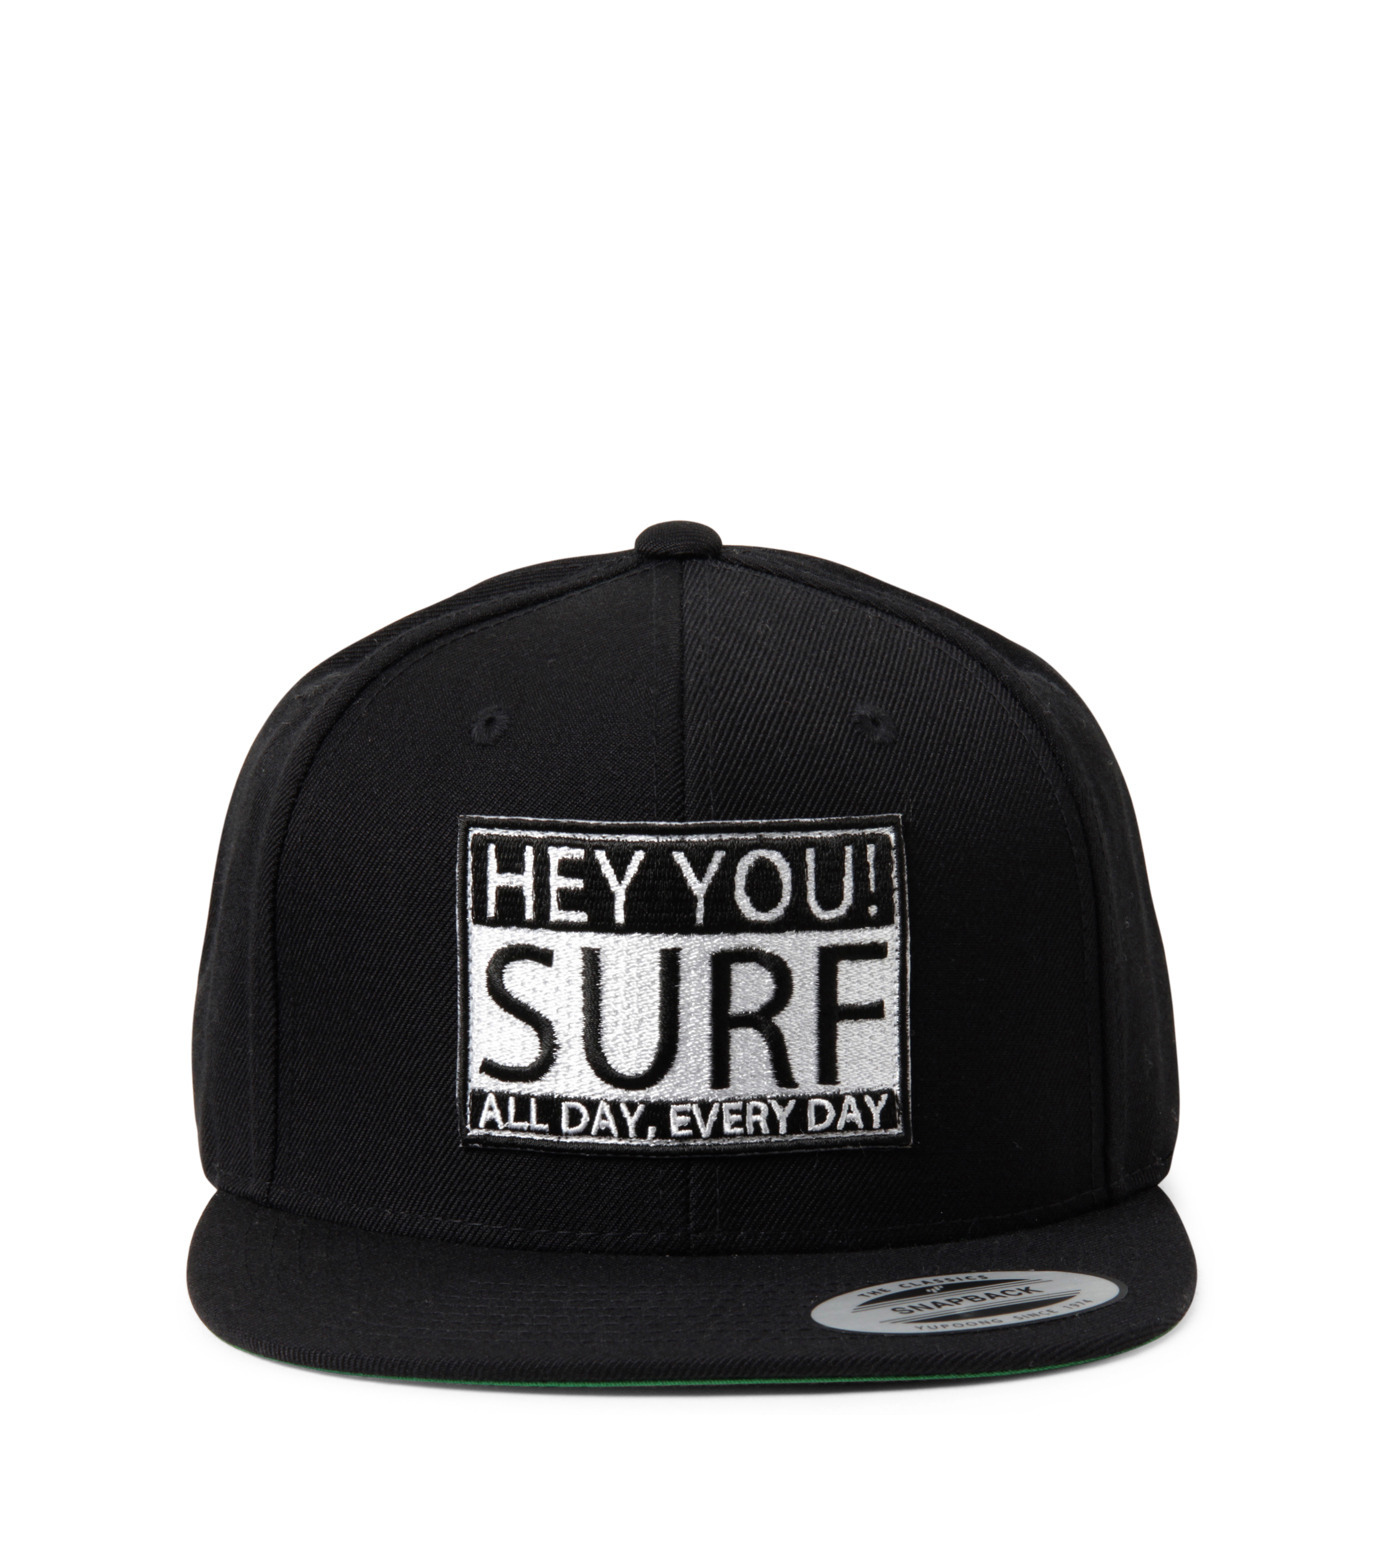 HEY YOU !(ヘイユウ)のHEY YOU! SURF CAP-MULTI COLOUR(キャップ/cap)-Surf-Cap 拡大詳細画像1